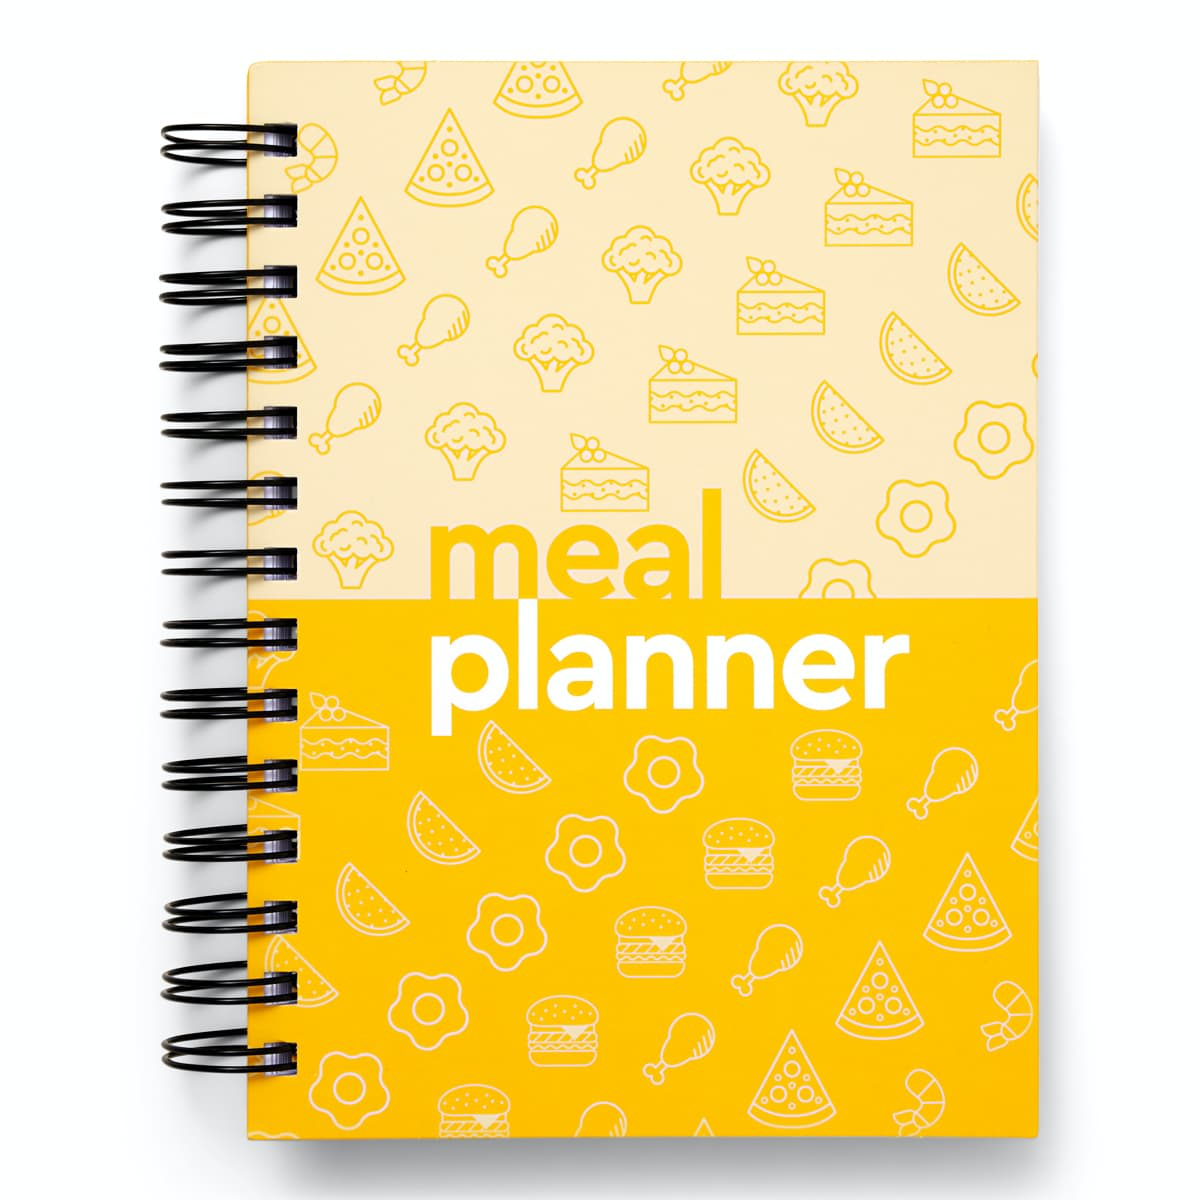 52 Week Meal Planner - front cover- daily food journal